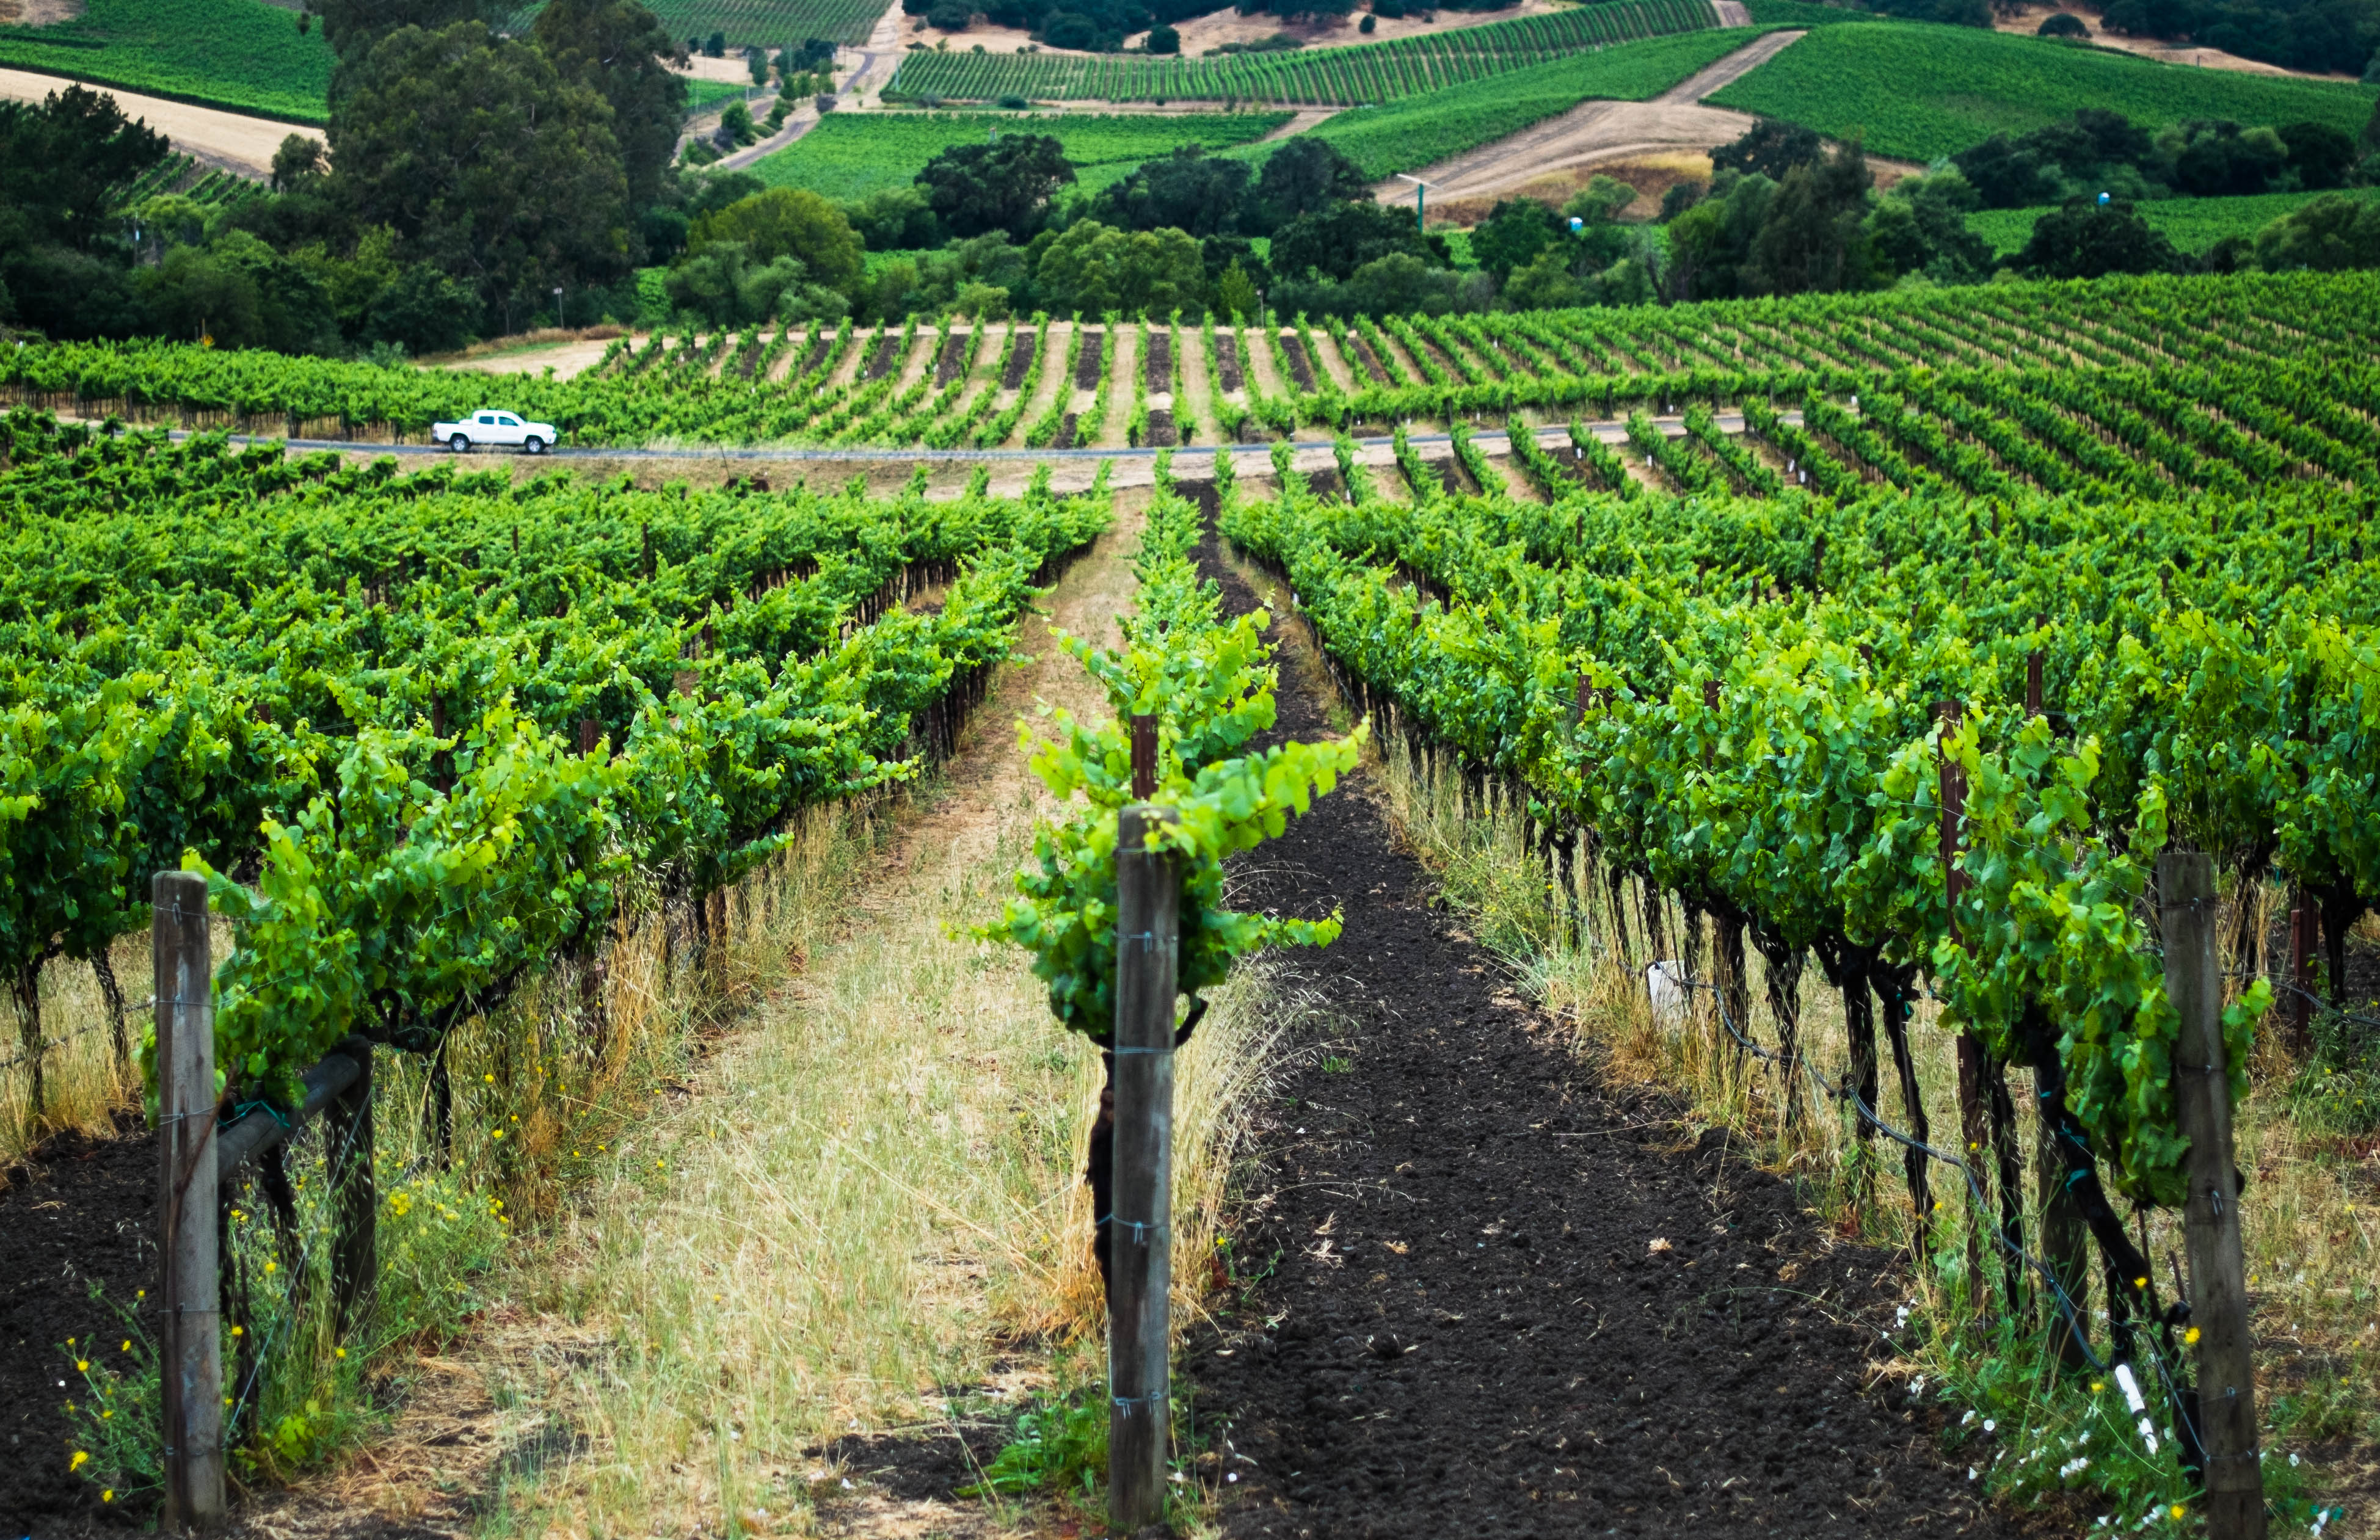 The vineyards stretch endlessly into the rolling hills